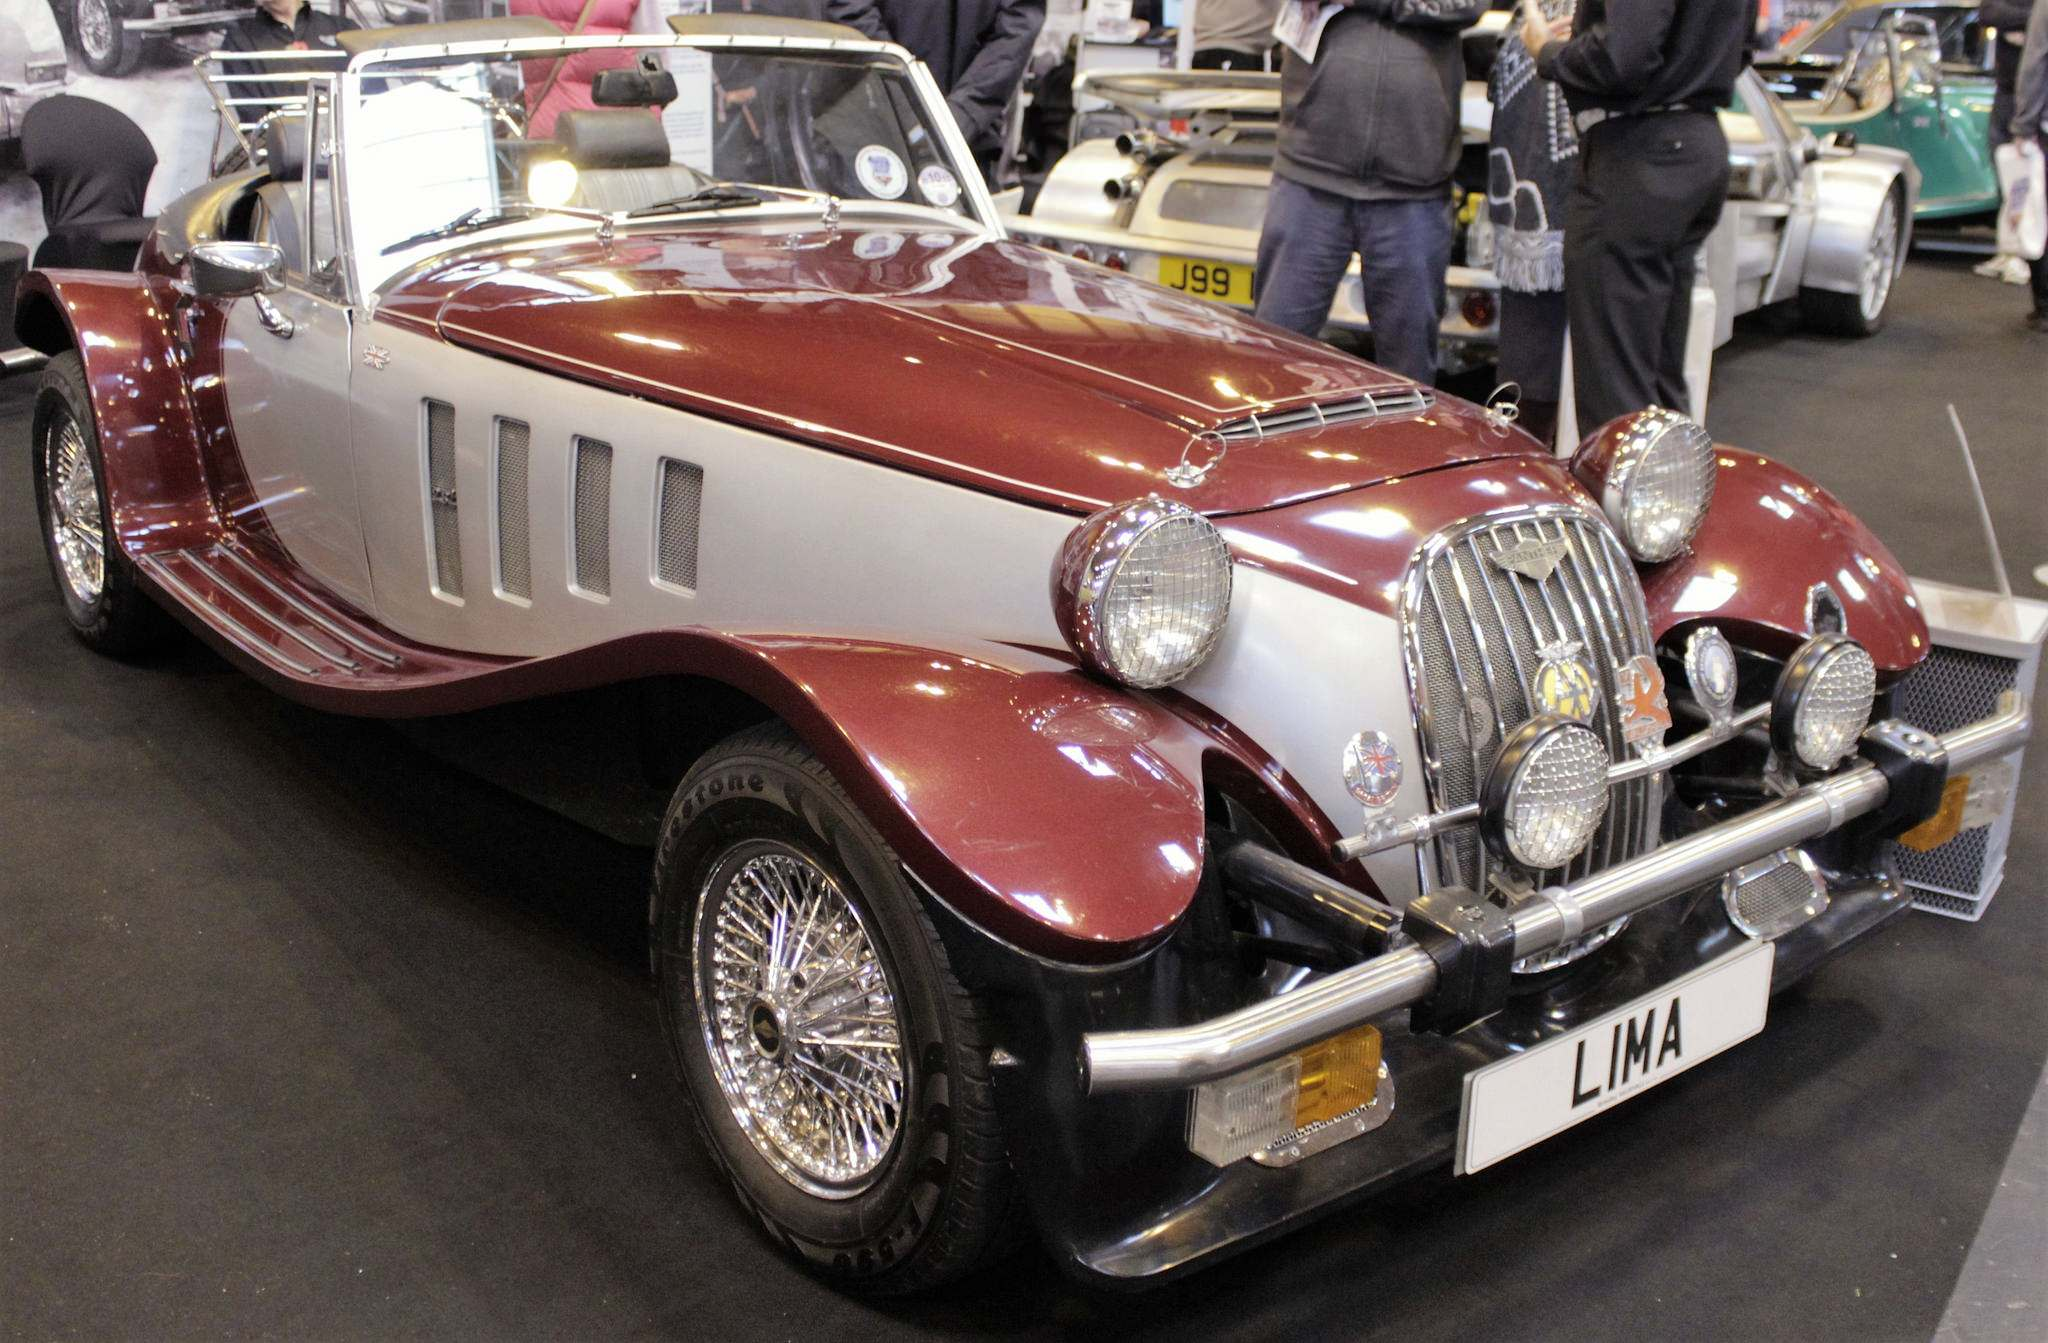 nec classic car1 NEC Classic Car Show 2016   The Best Indoor Classic Car Show in the UK